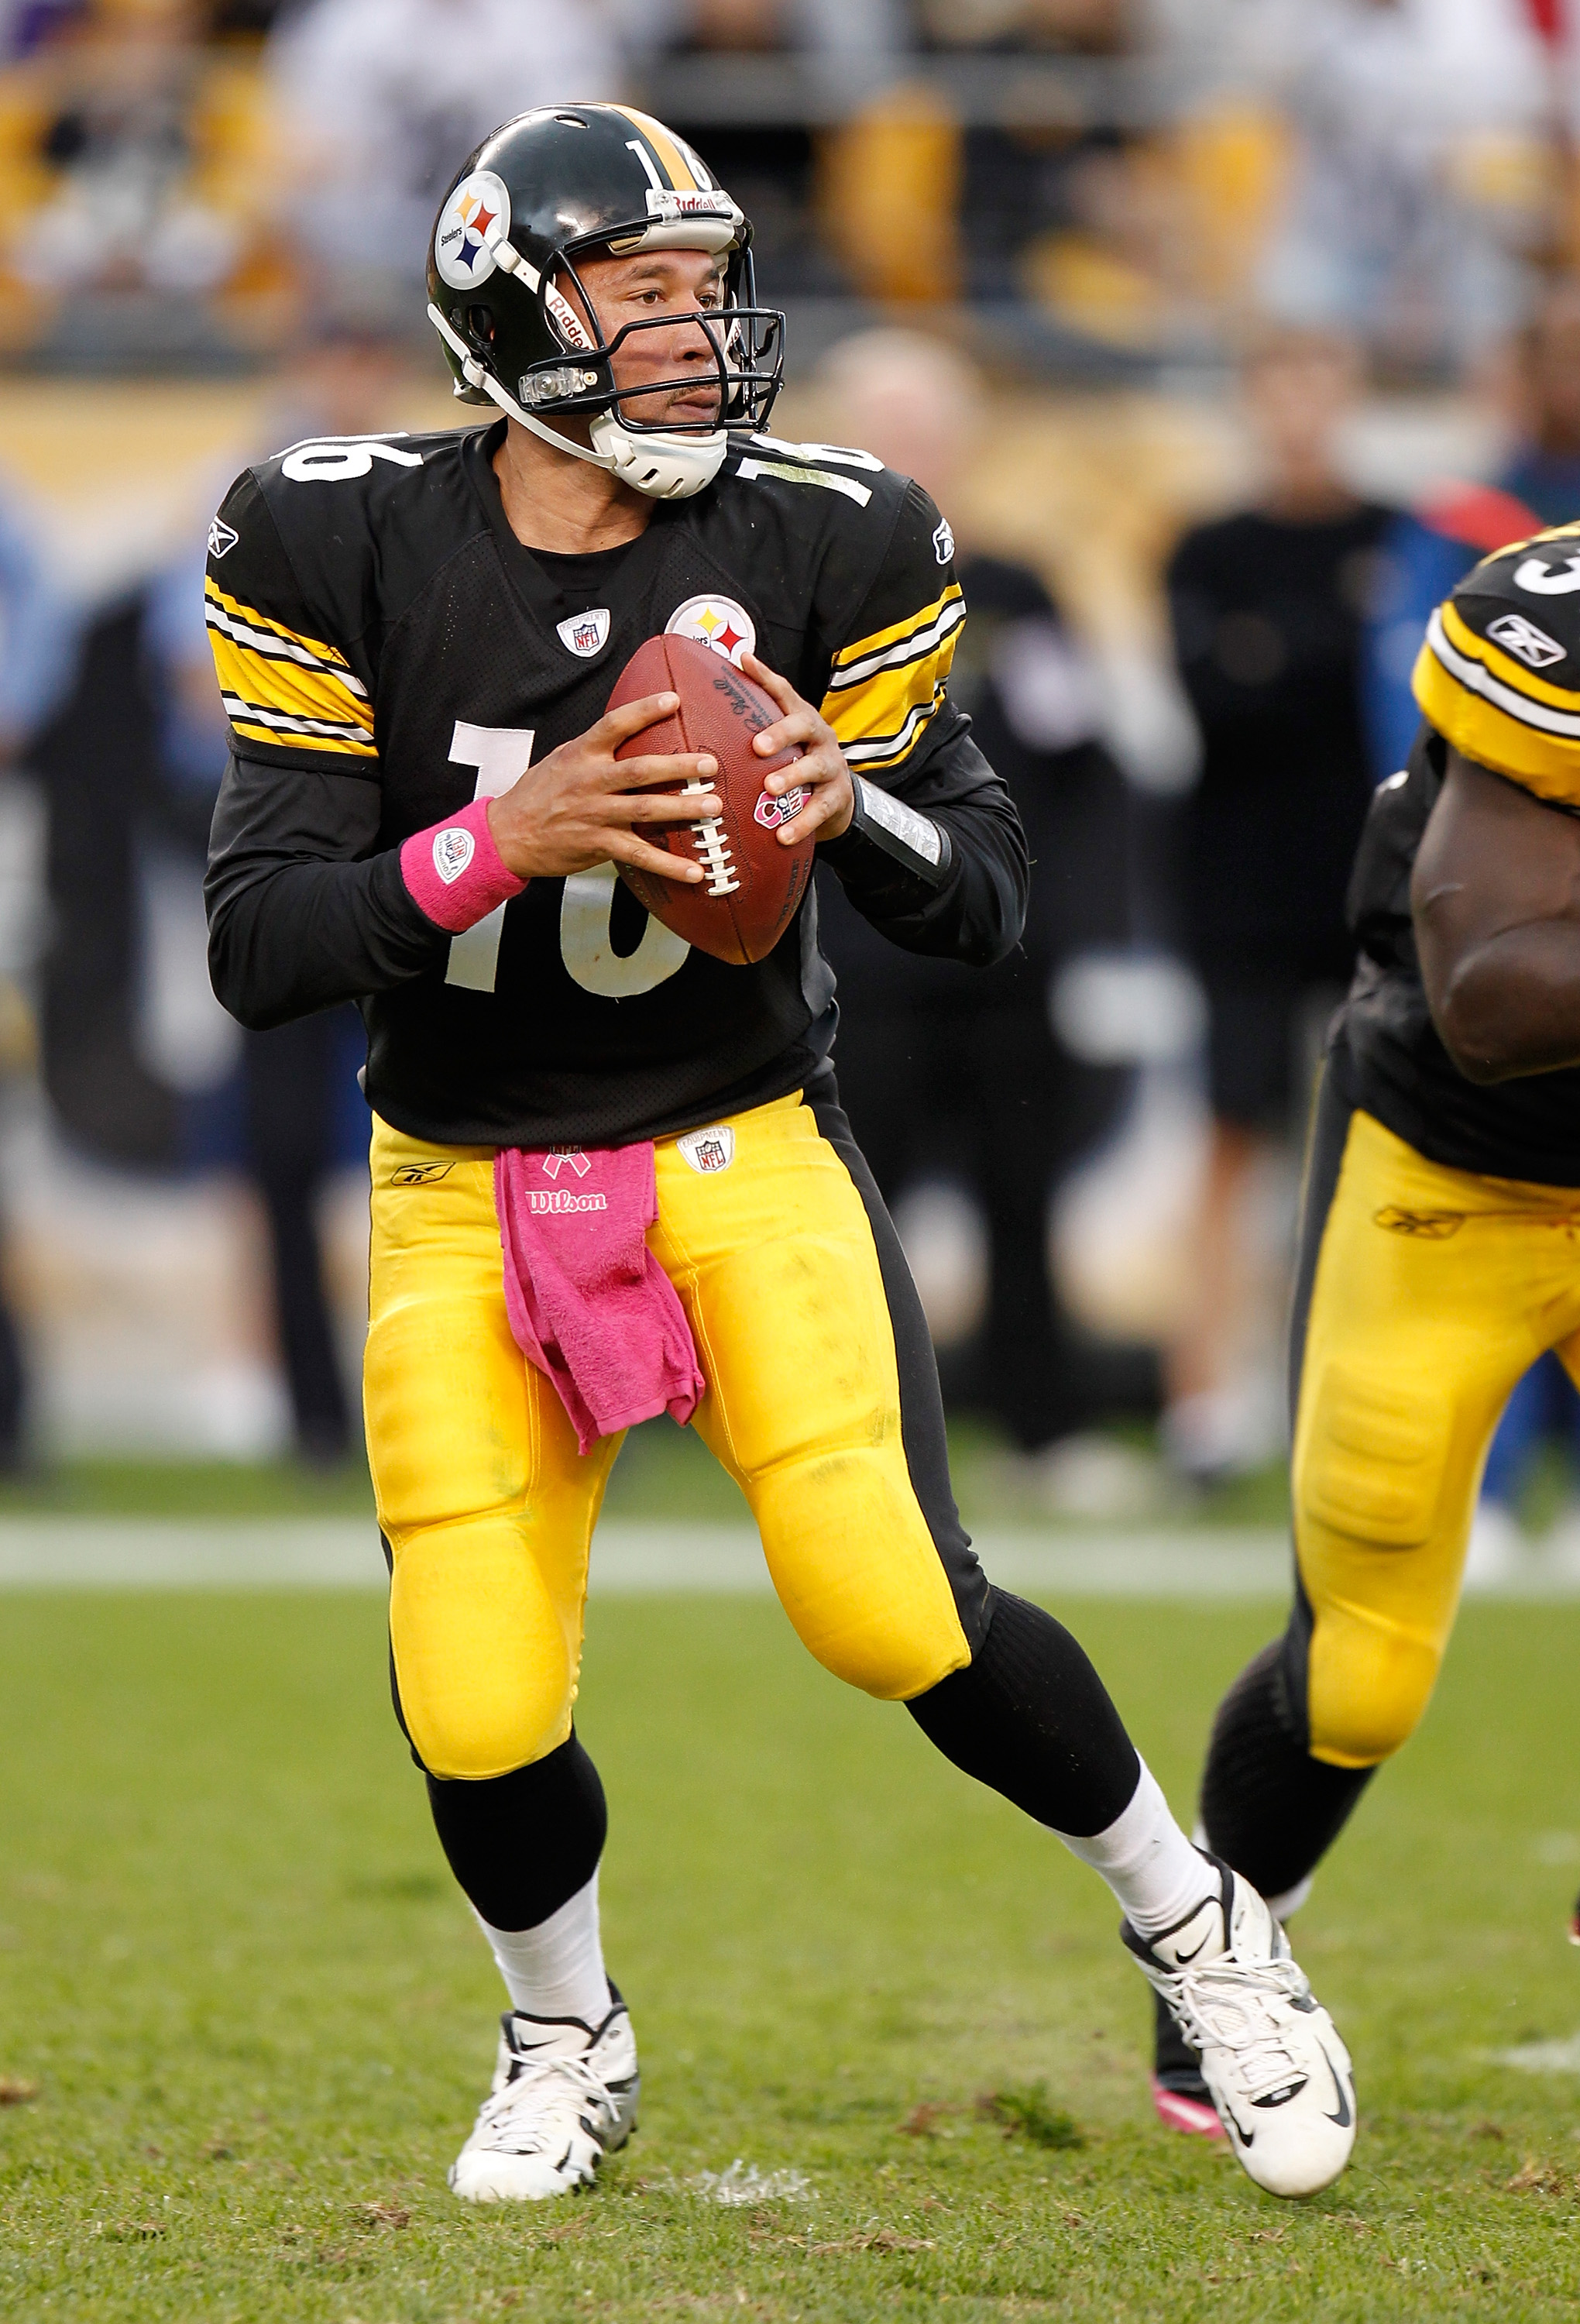 PITTSBURGH - OCTOBER 03: Charlie Batch #16 of the Pittsburgh Steelers looks for an open receiver during the game against the Baltimore Ravens on October 3, 2010 at Heinz Field in Pittsburgh, Pennsylvania. (Photo by Gregory Shamus/Getty Images)